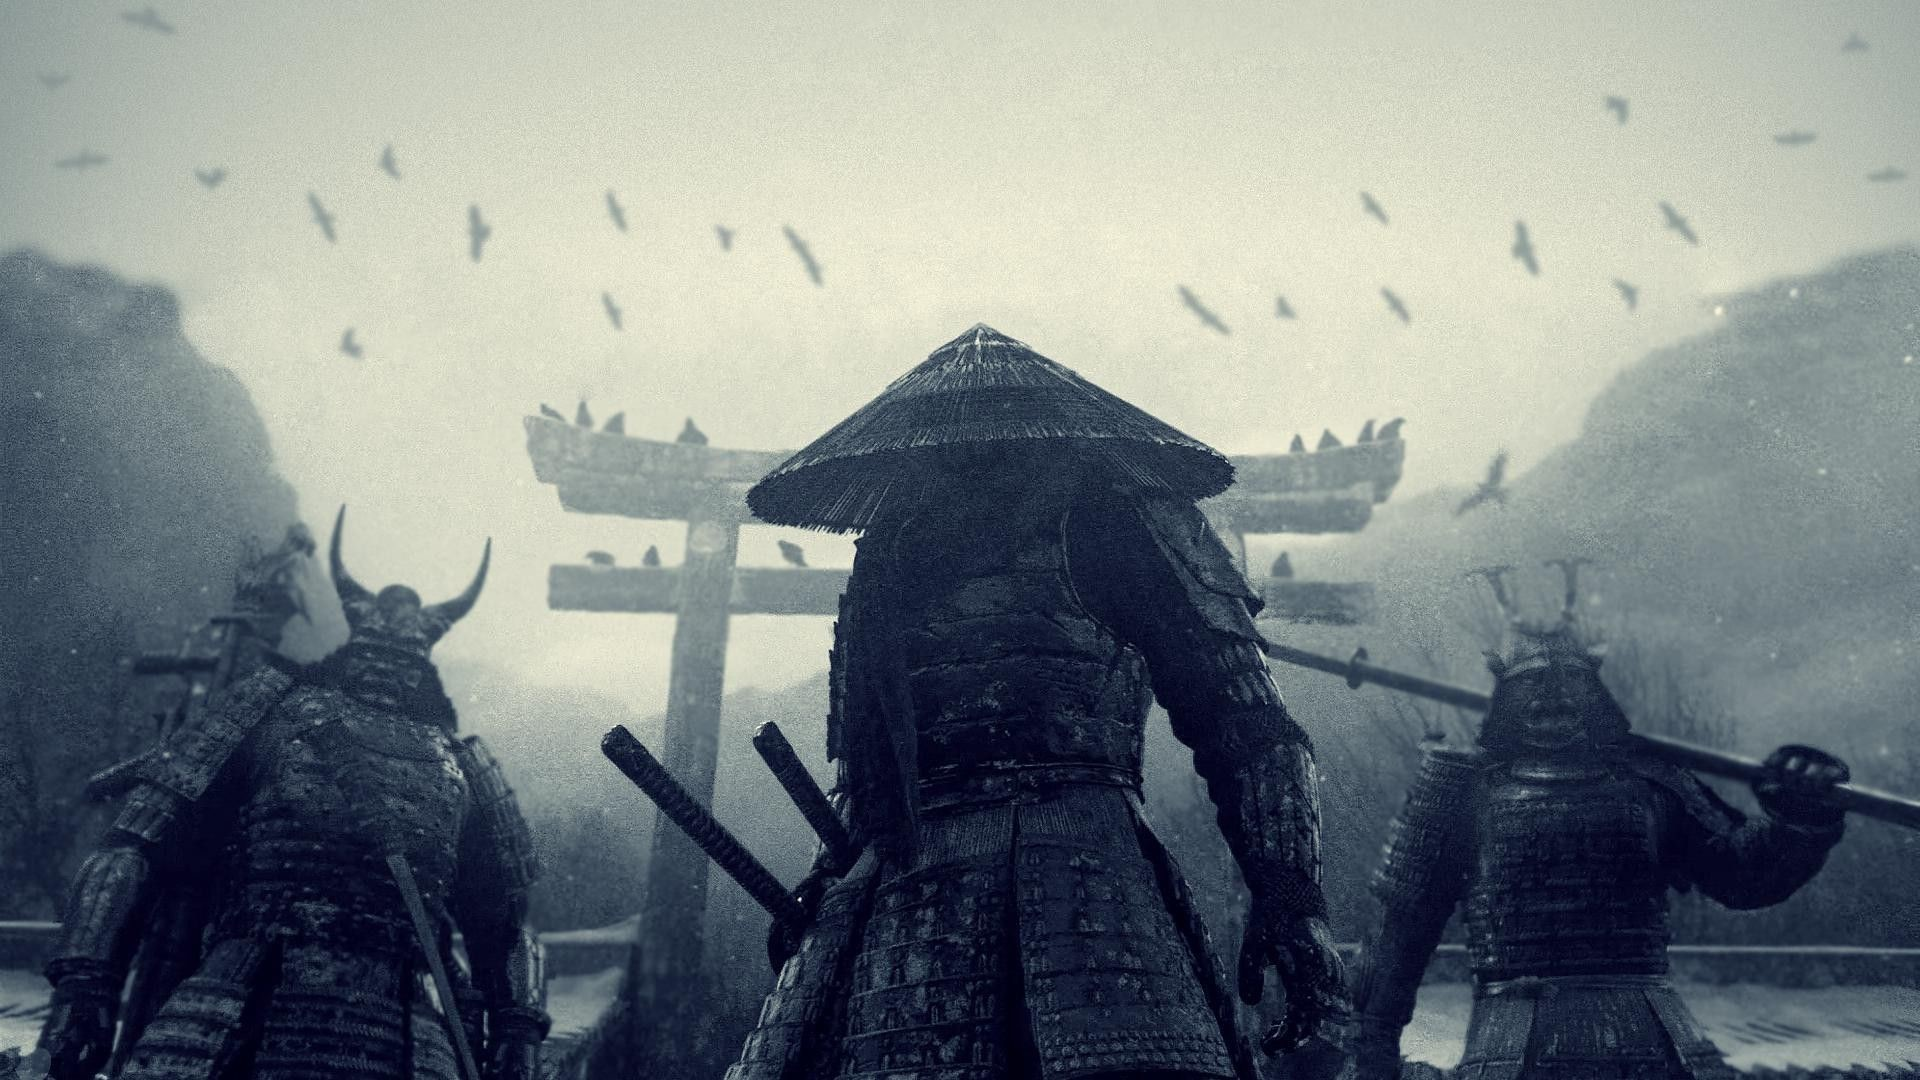 Res: 1920x1080,  Wallpapers For > Ancient Samurai Wallpaper Hd